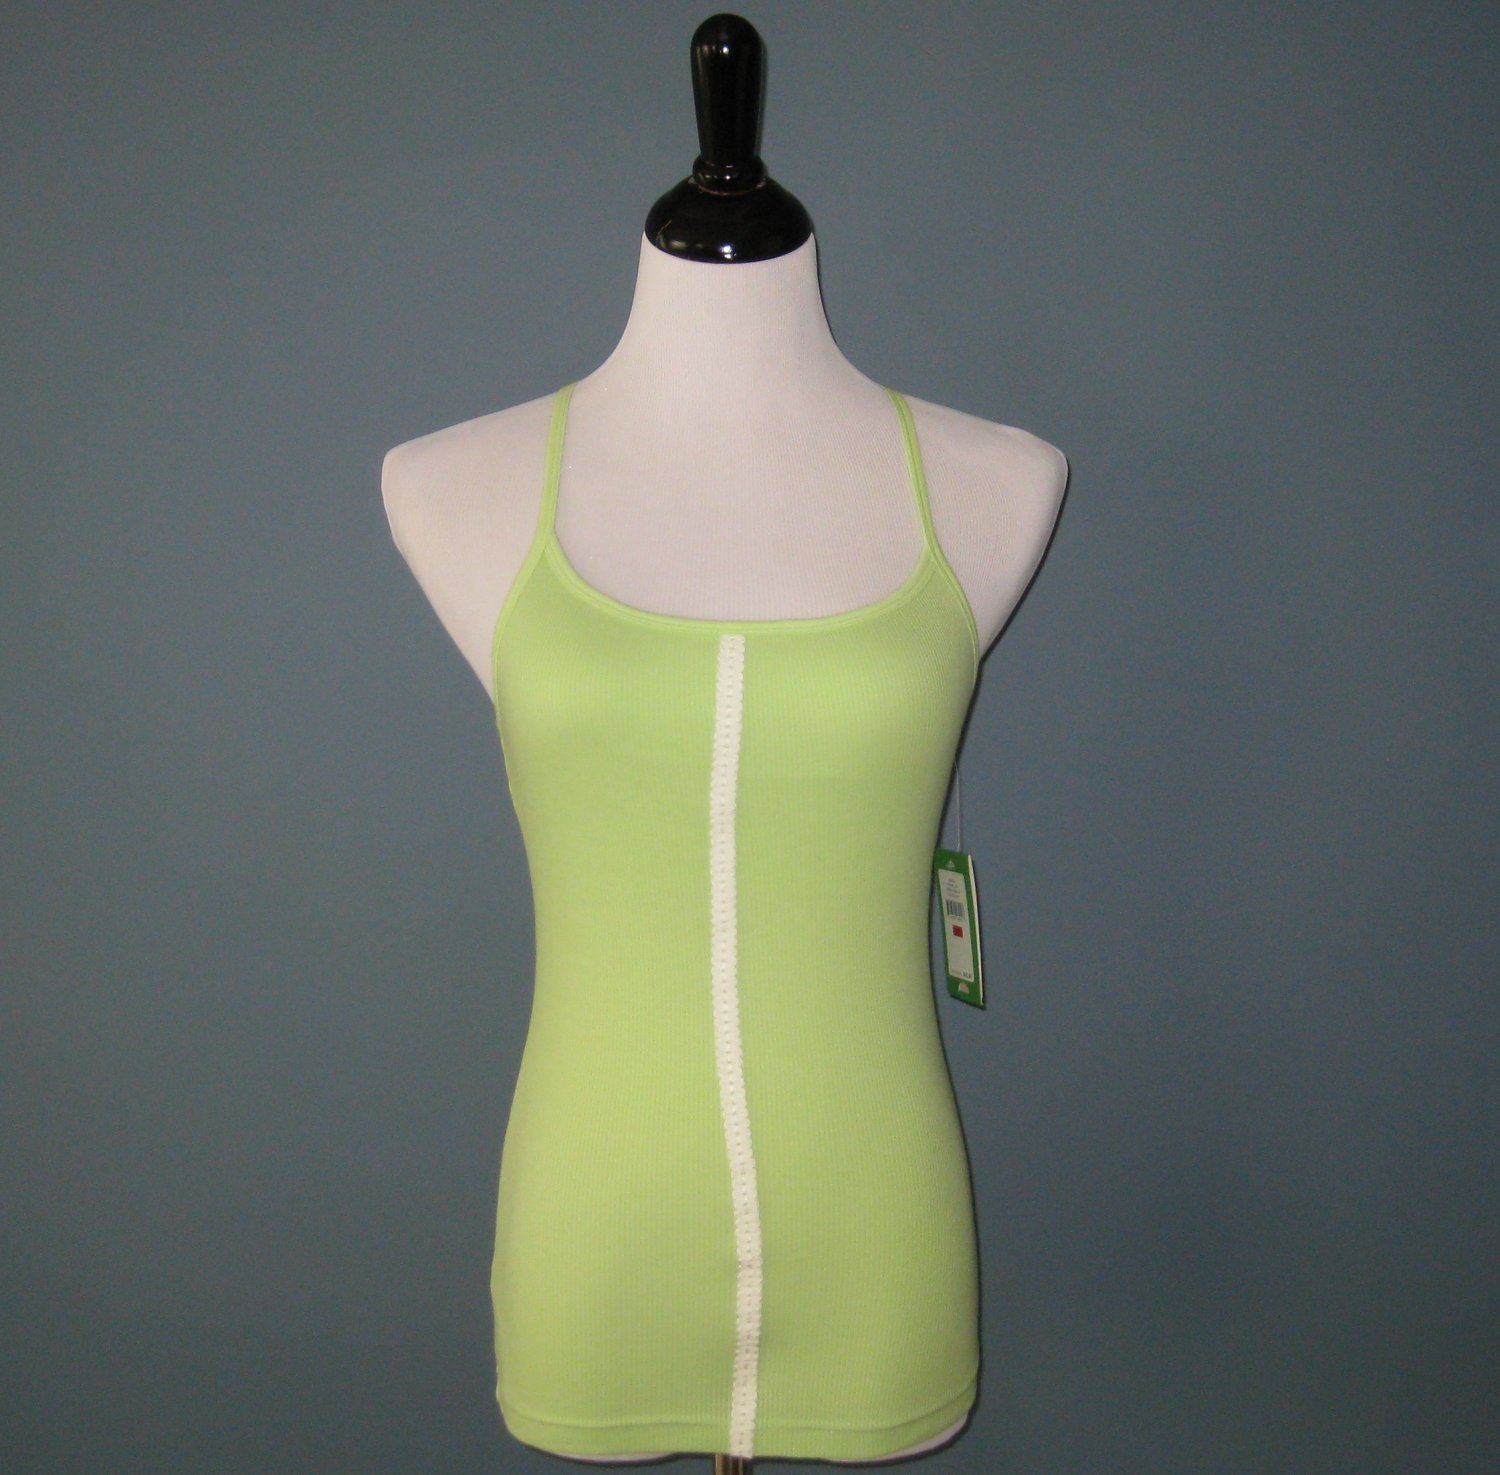 NWT Lilly Pulitzer Green Cotton Modal Rib Knit Racerback Tank - S